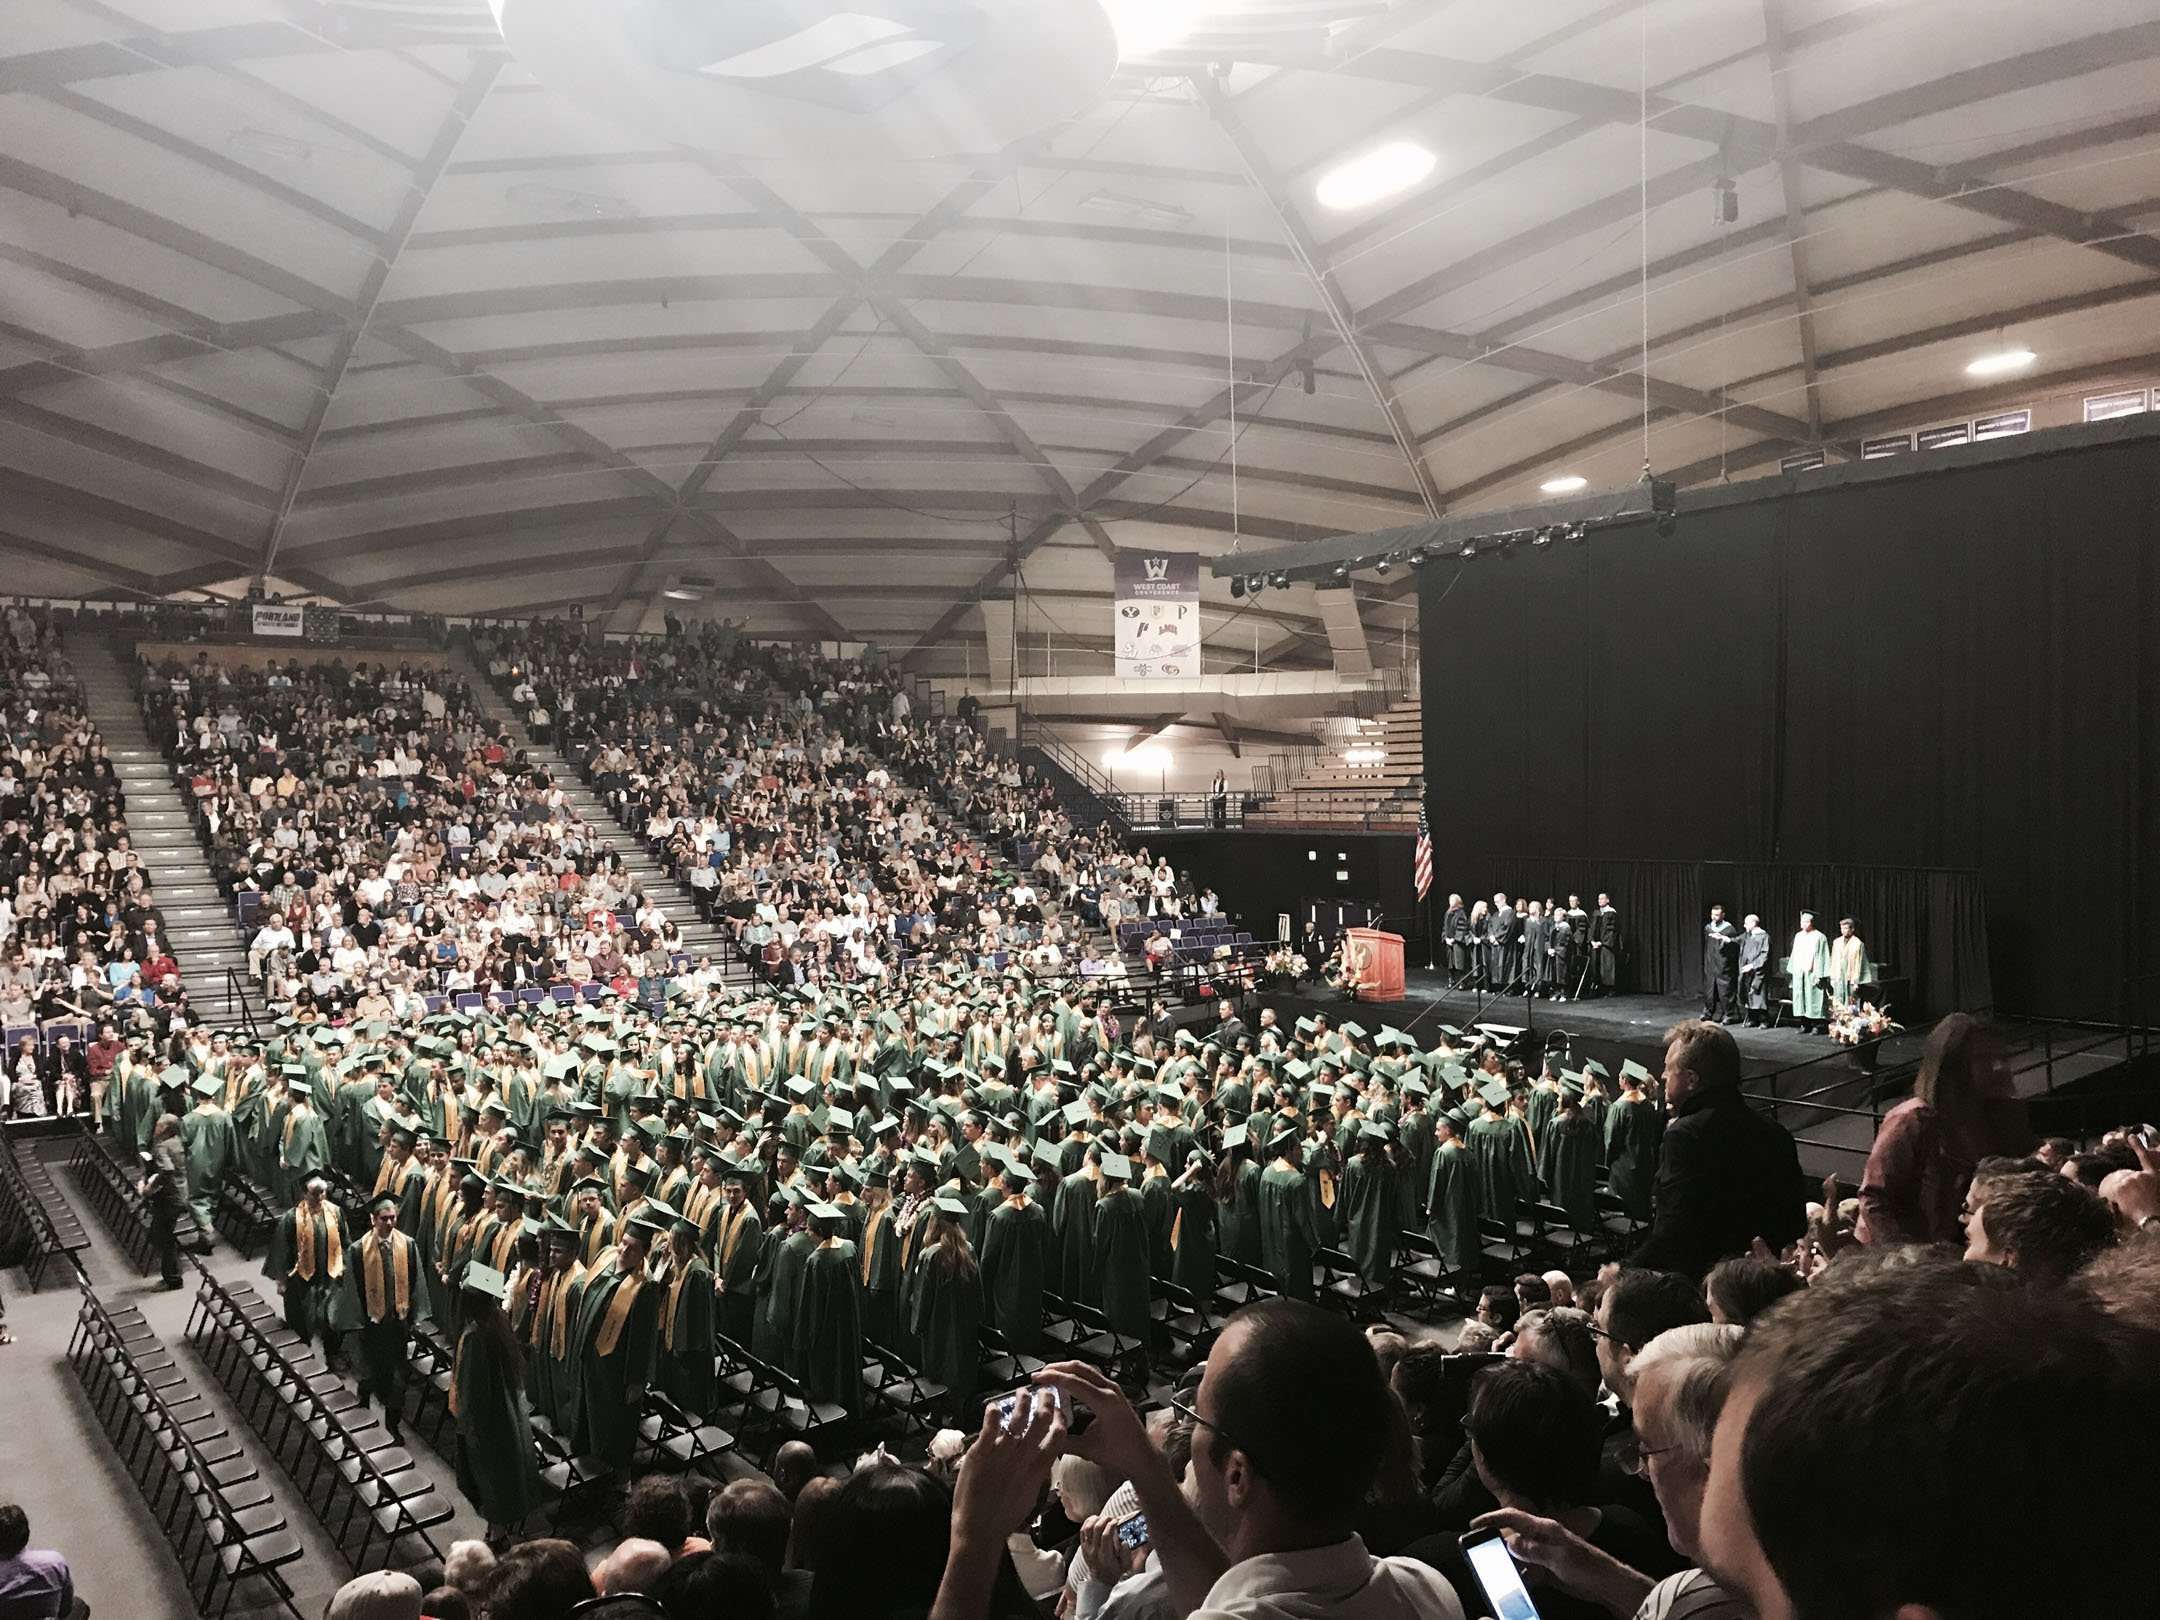 West Linn high school gradutation